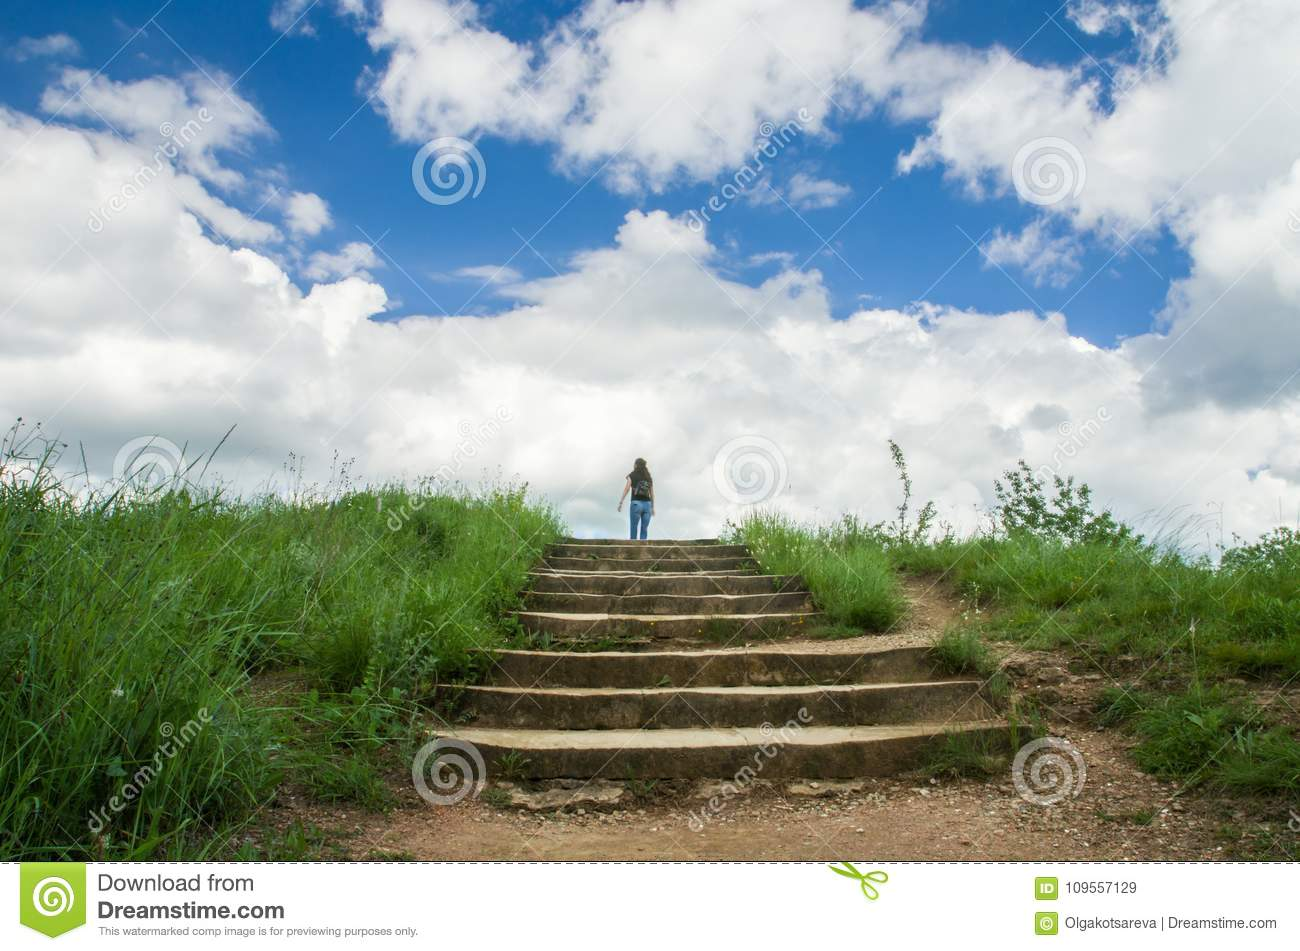 A Young Girl Stands On Top Of A Stone Staircase And Looks At The Sky